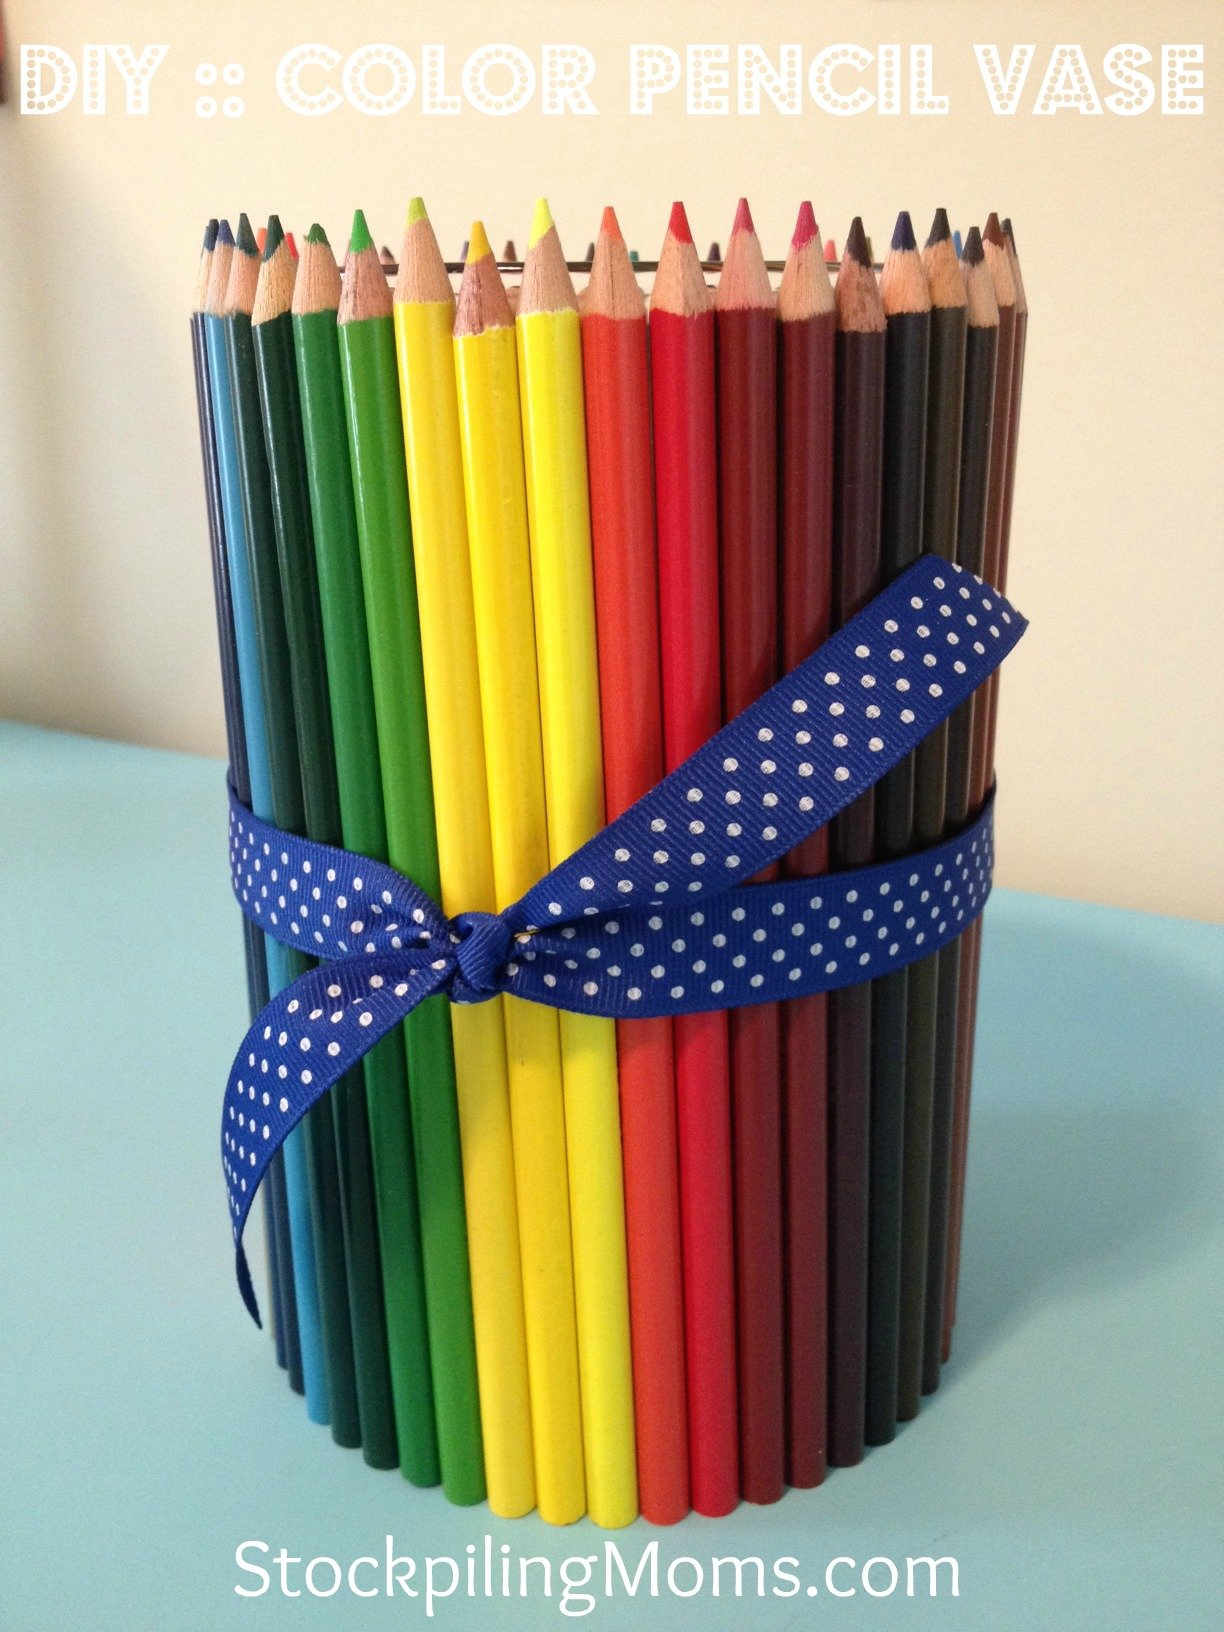 DIY Color Pencil Vase is a lovely teachers gift!